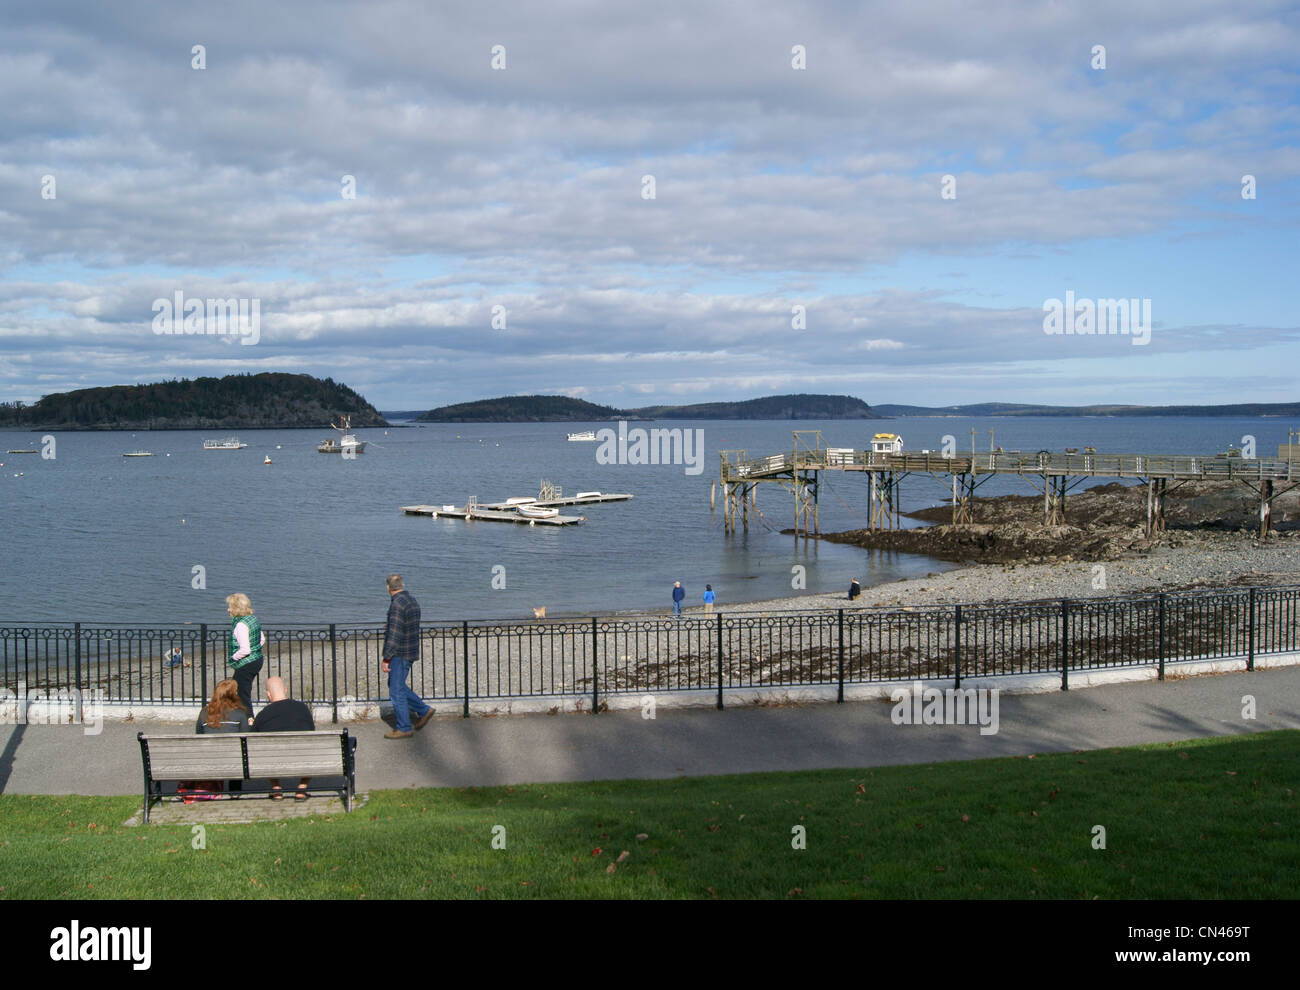 Wide view of people enjoying the waterfront promenade and beach in Bar Harbor, Maine. - Stock Image